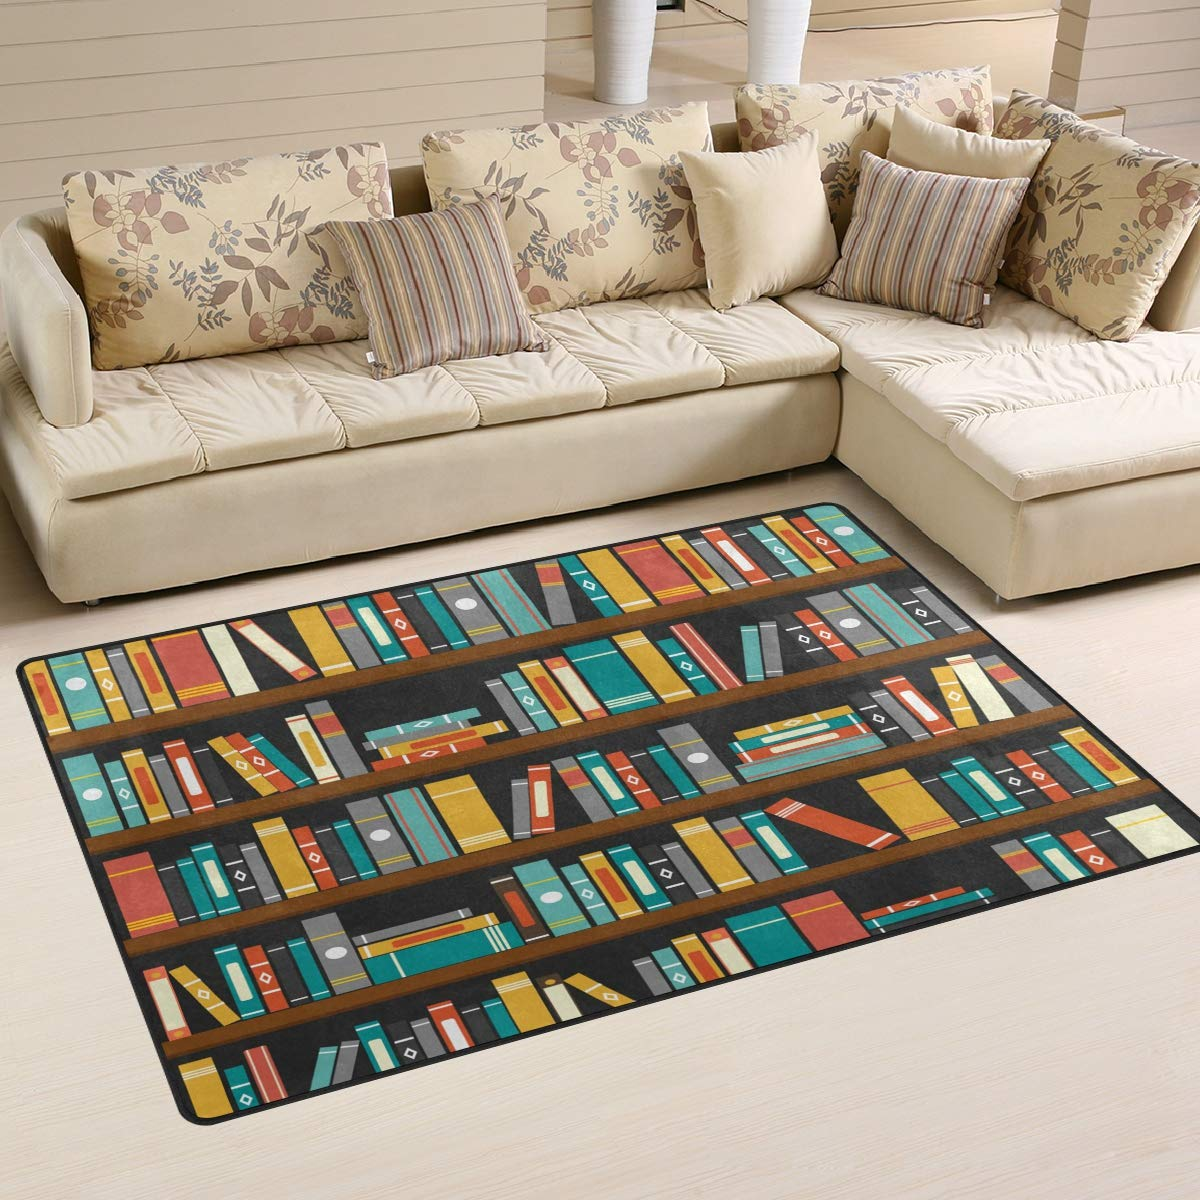 XiangHeFu Area Rugs Doormats Library Book Shelf 5'x3'3 (60x39 Inches) Non-Slip Floor Mat Soft Carpet for Living Dining Bedroom Home